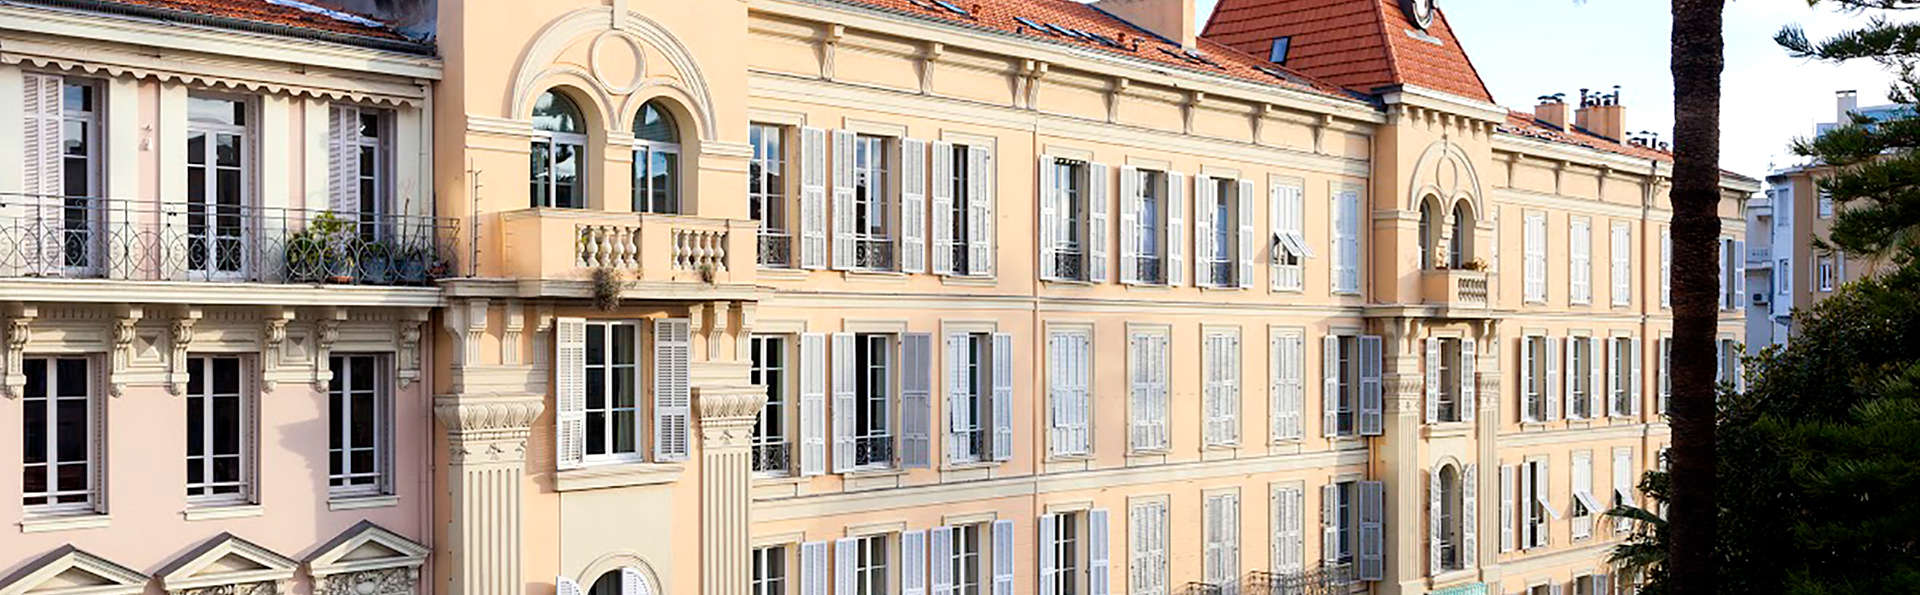 La malmaison nice boutique hotel 4 nice france for Boutique hotel nice